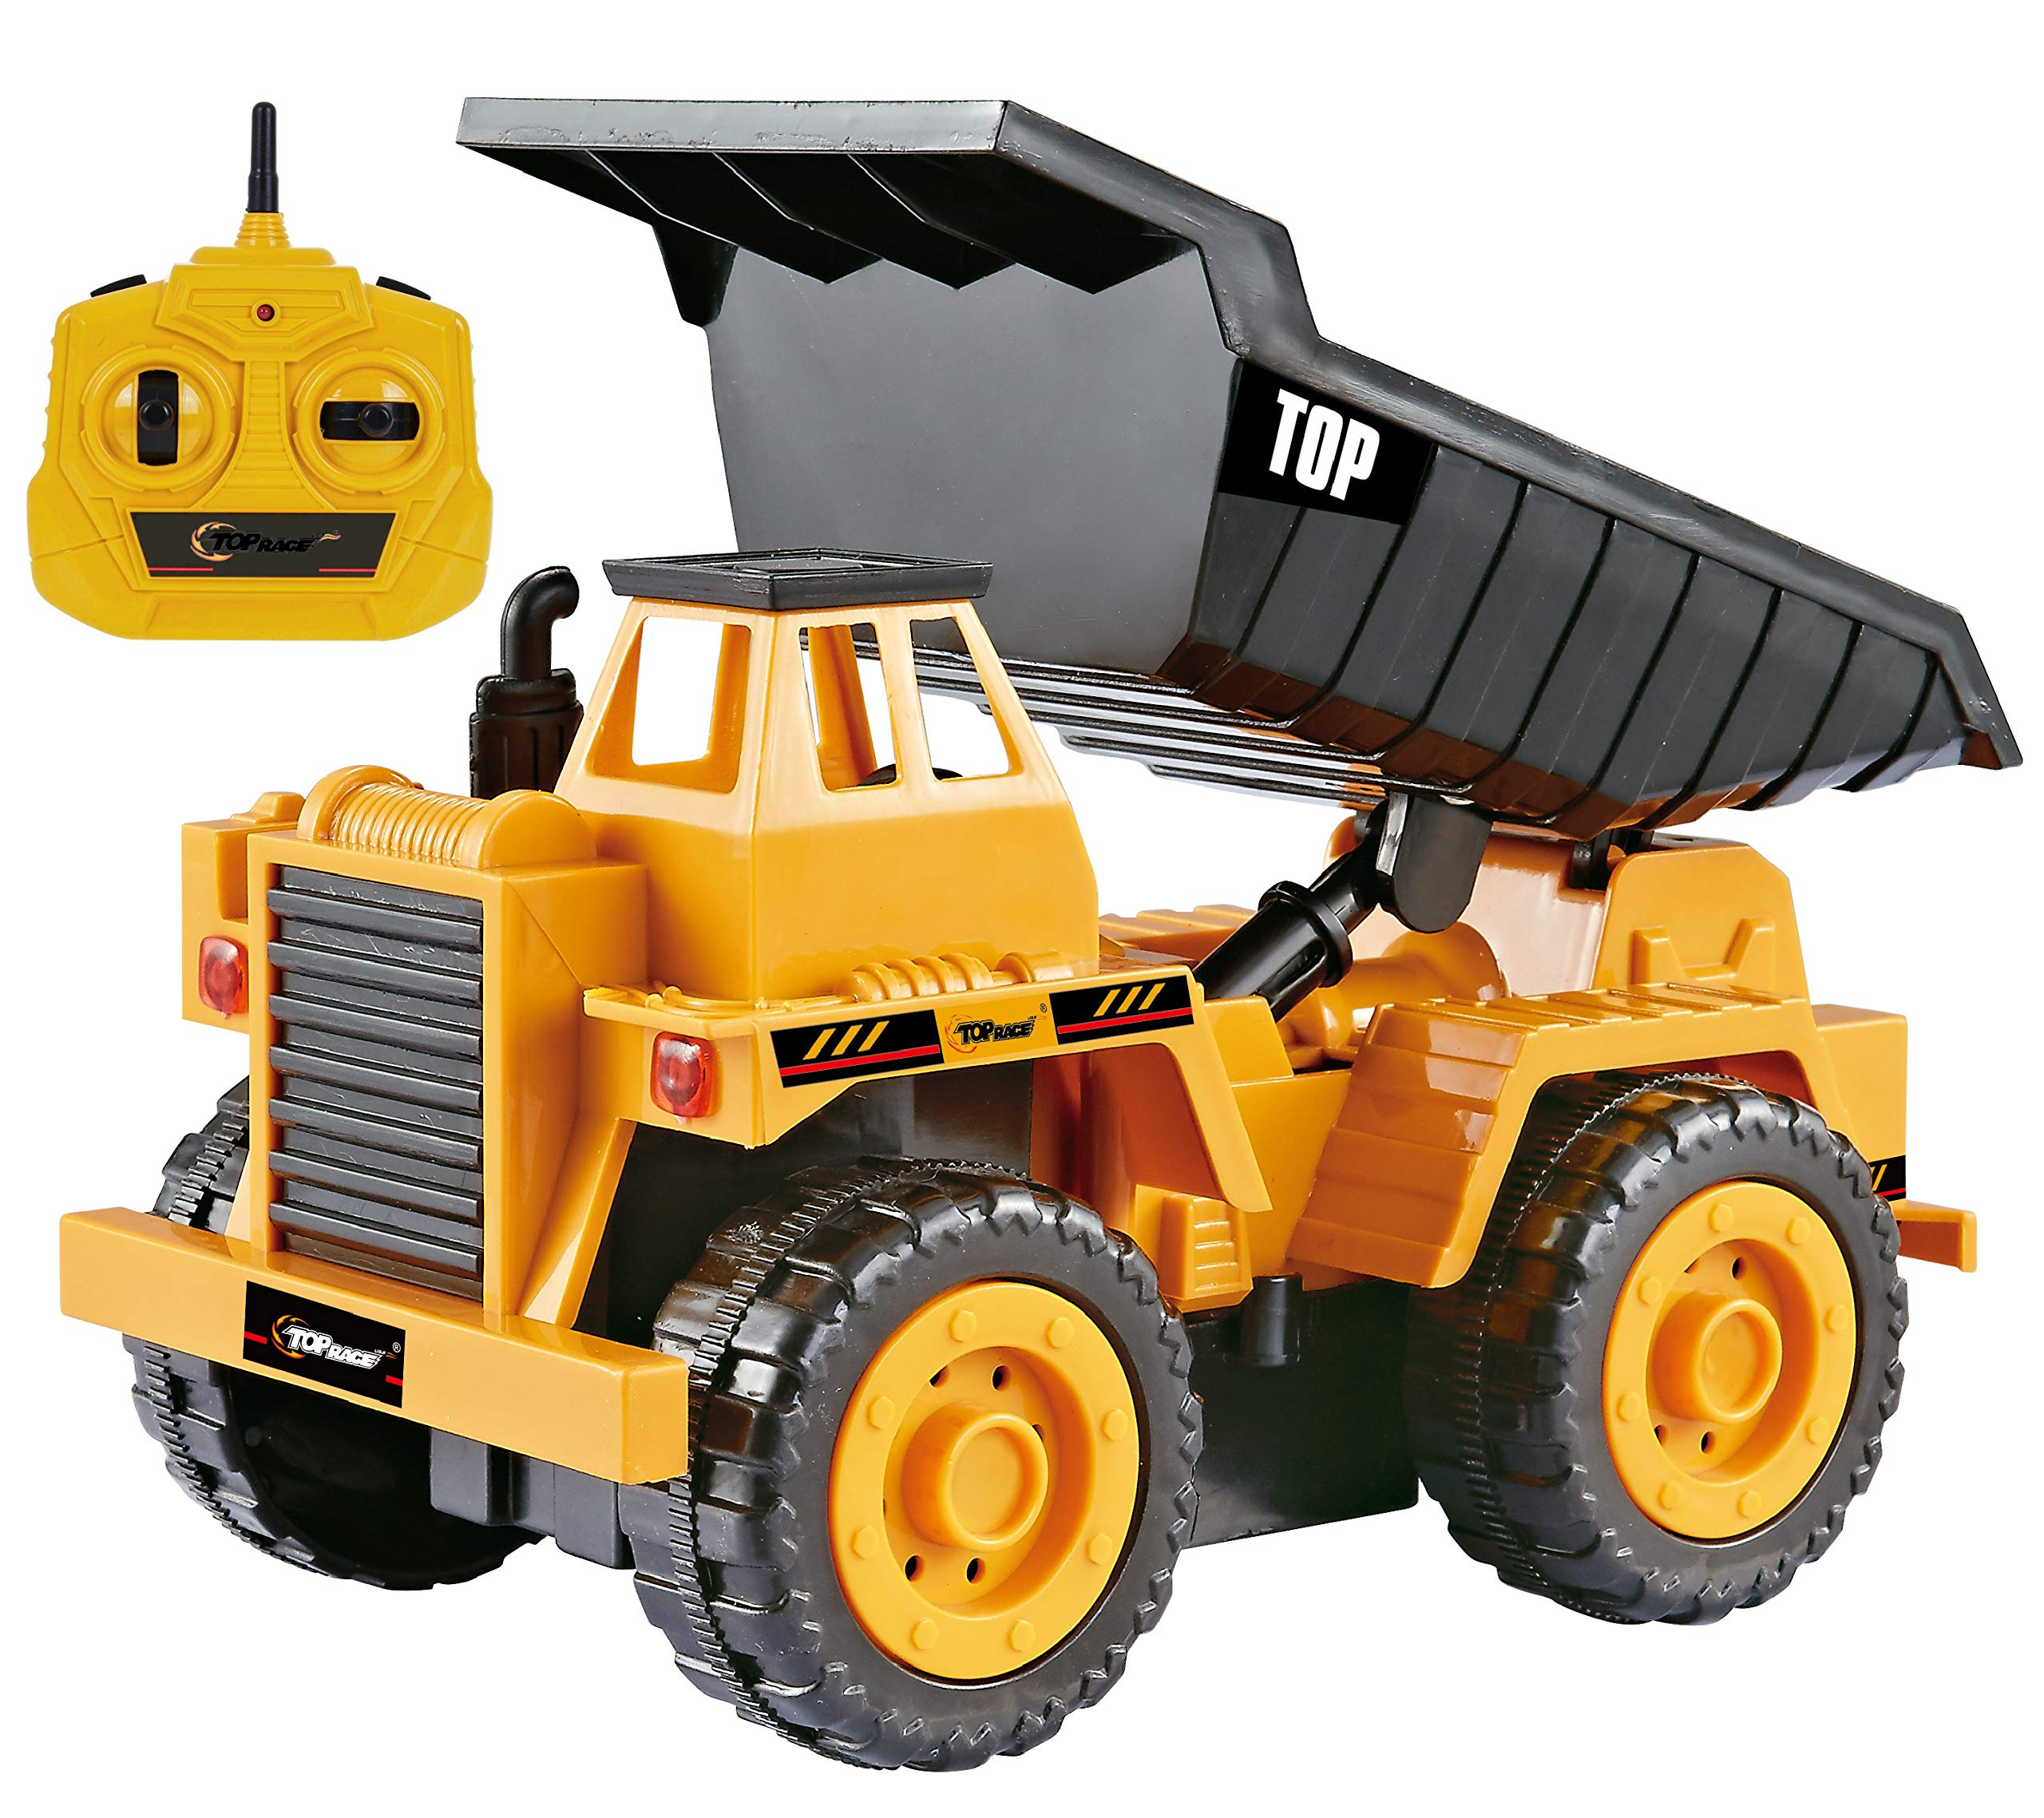 Top Race 5 Channel Fully Functional Remote Control Construction Truck Kids Size Designed for Small Hands (Dump Truck)